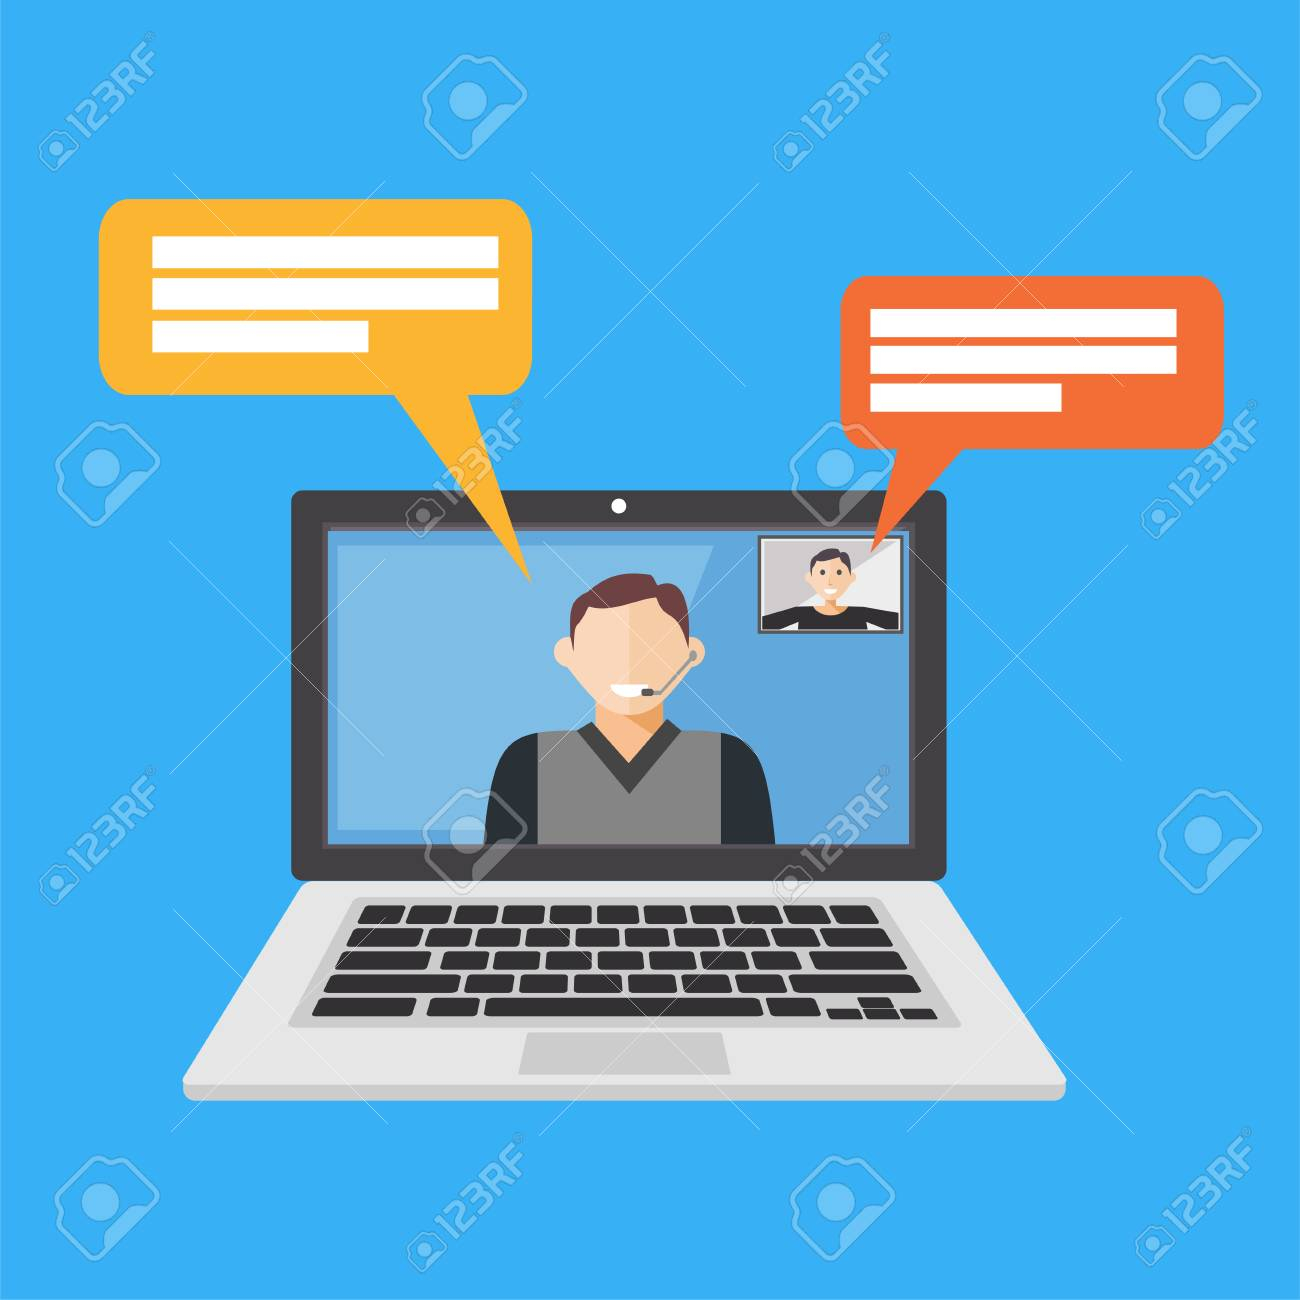 Video call. Video conference. Video streaming icon or symbol - 88760506